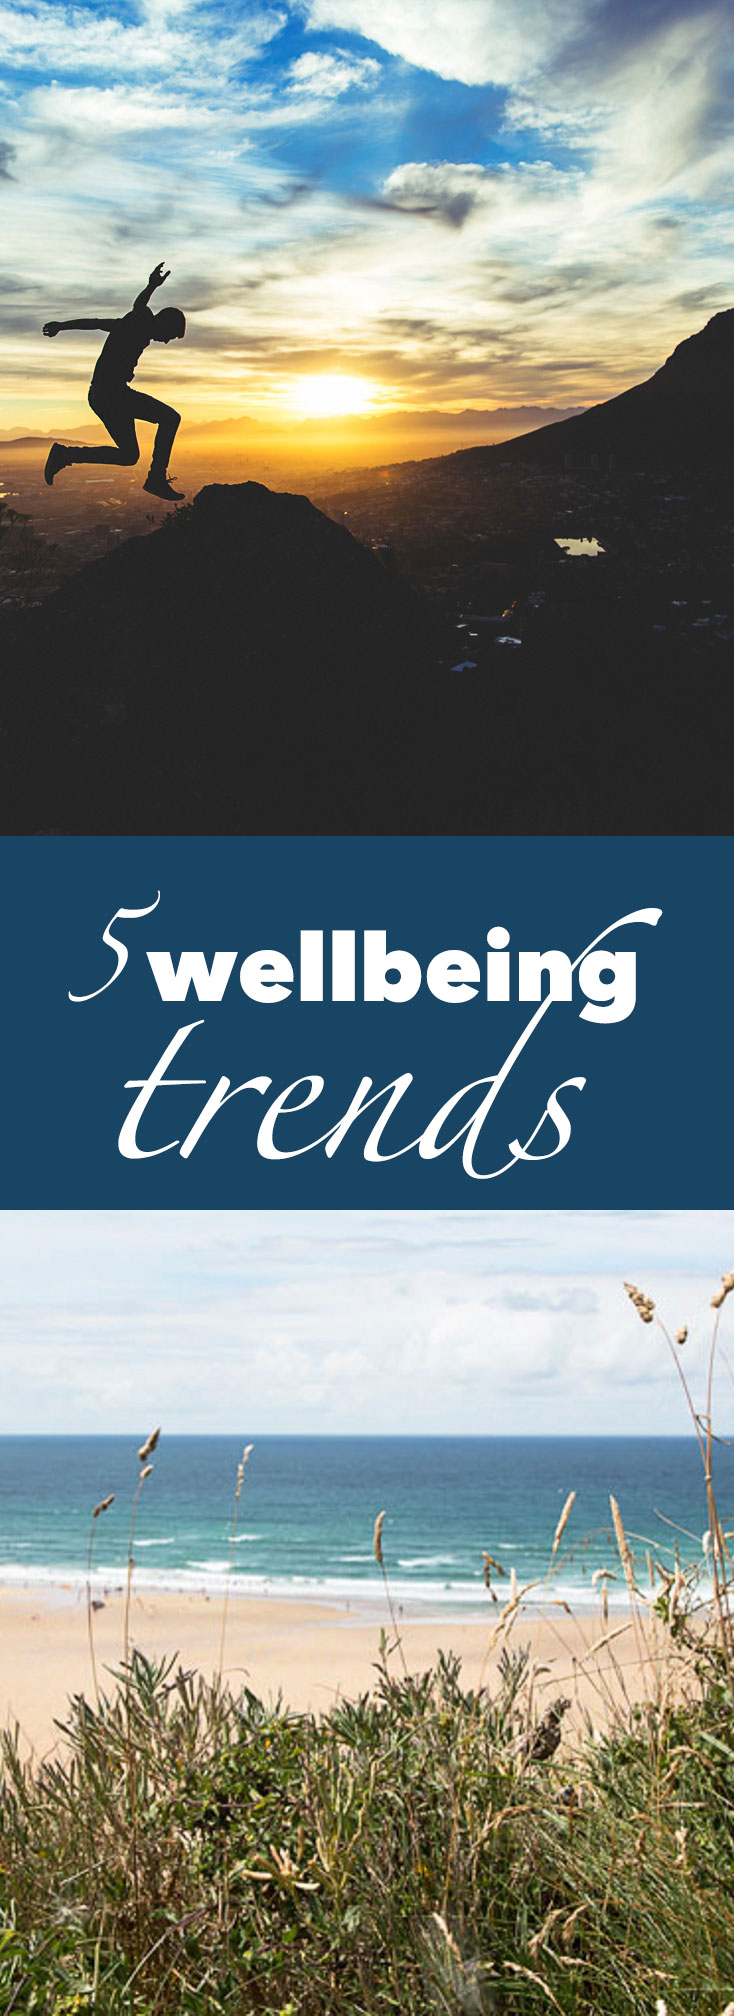 Wellbeing-Trends